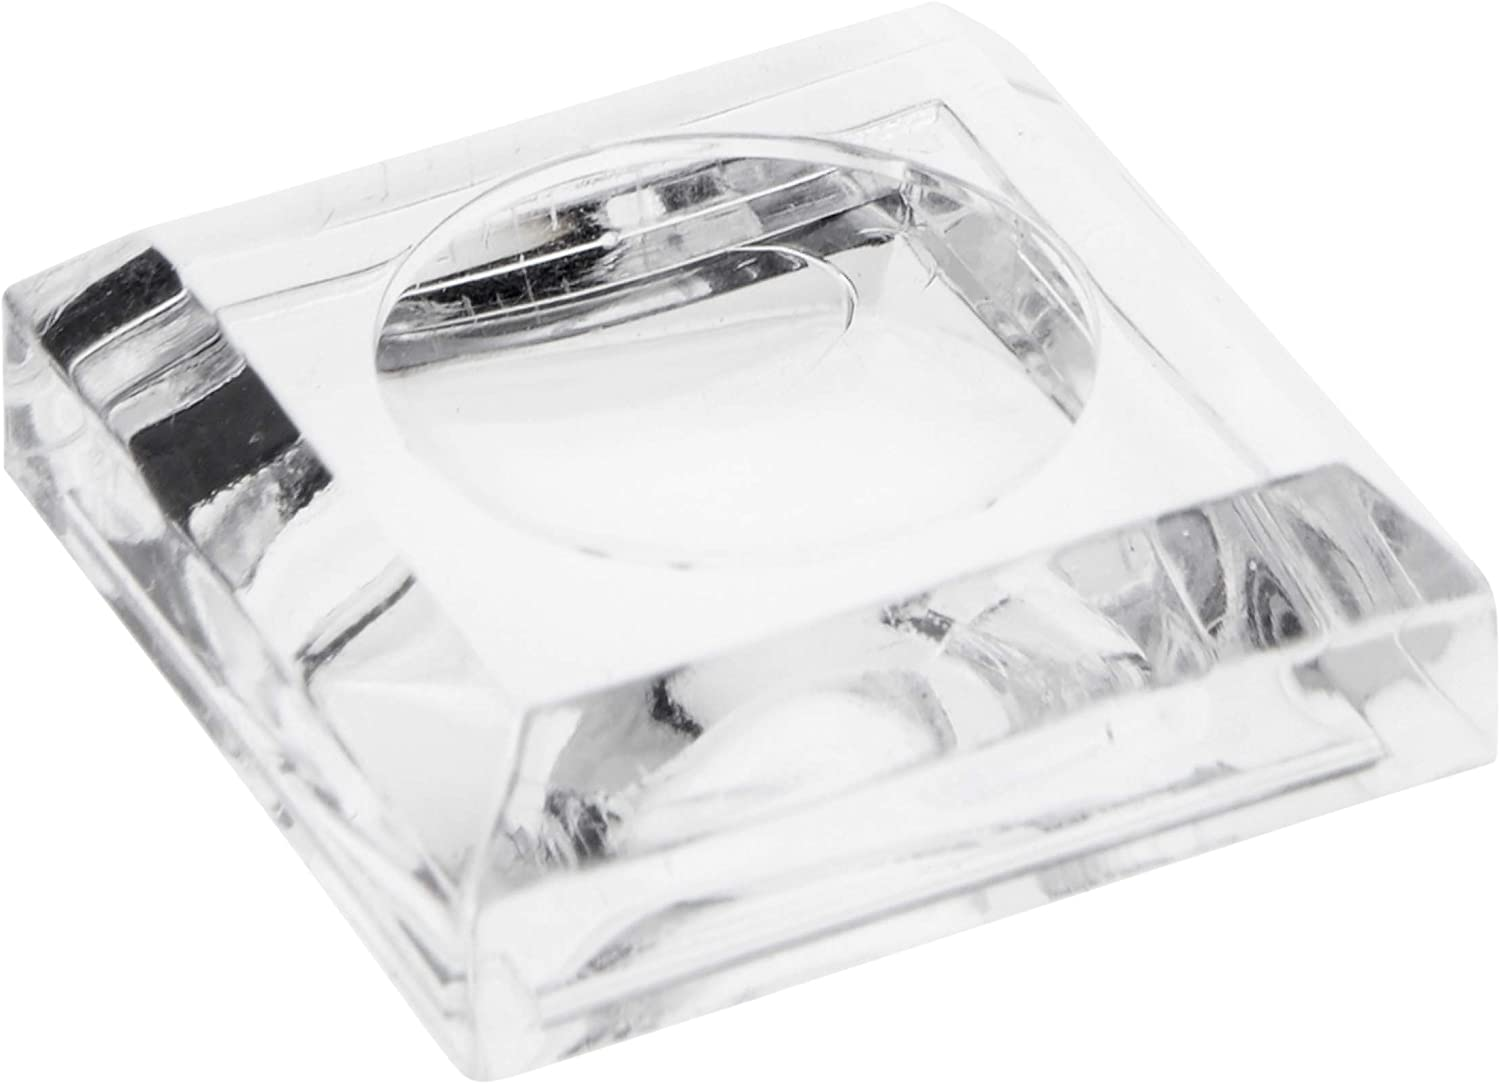 0.375 H x 1.25 W x 1.25 D Plymor Clear Acrylic Square Display Base with Indented Circle to Hold Egg Ball or Sphere Marble 0.75 Circle